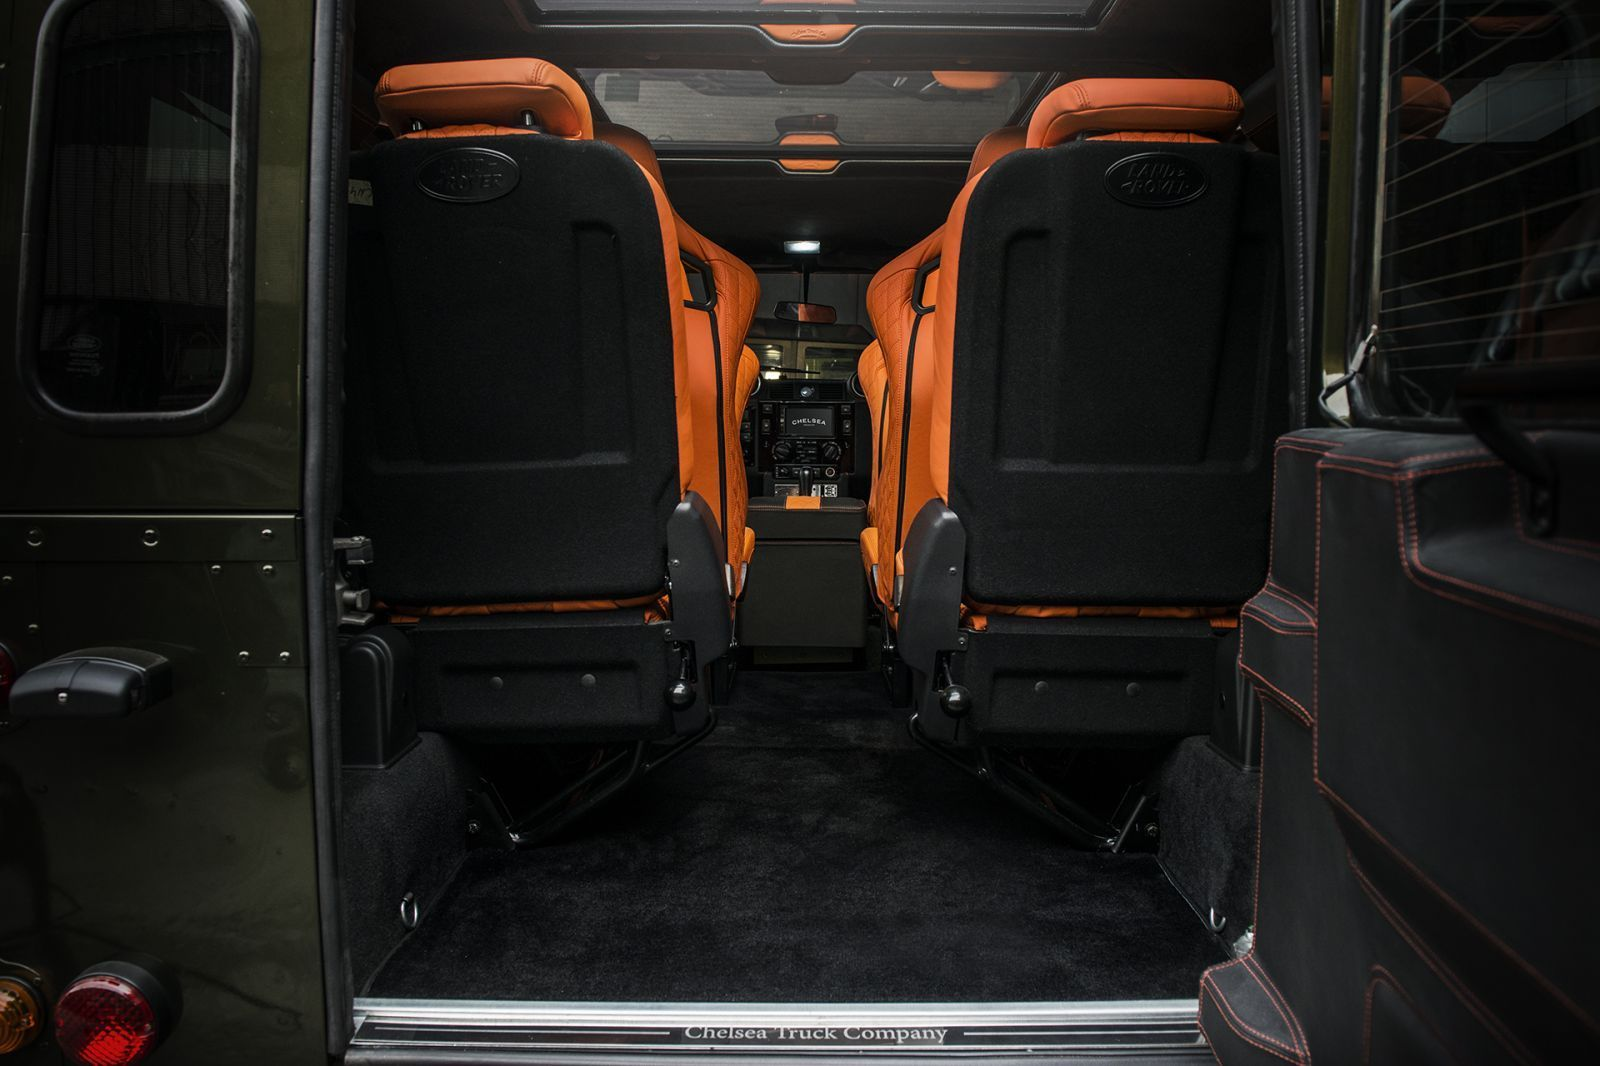 Land Rover Defender 110 (1991-2016) Floor Carpet by Chelsea Truck Company - Image 763